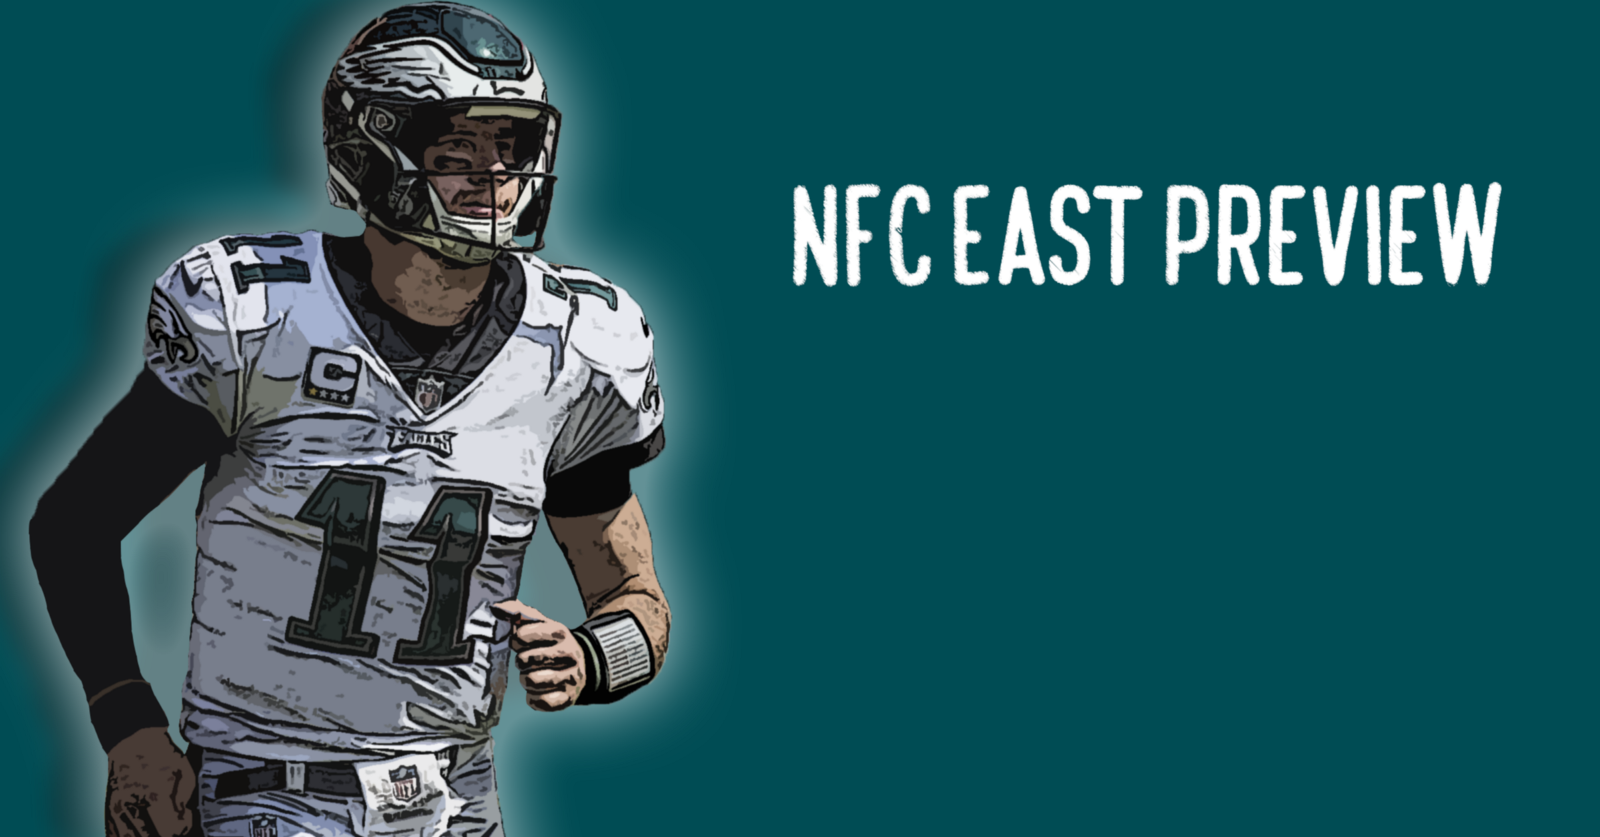 NFL Preview 2018  The NFC East Is As Unpredictable As Ever bcd1145d4